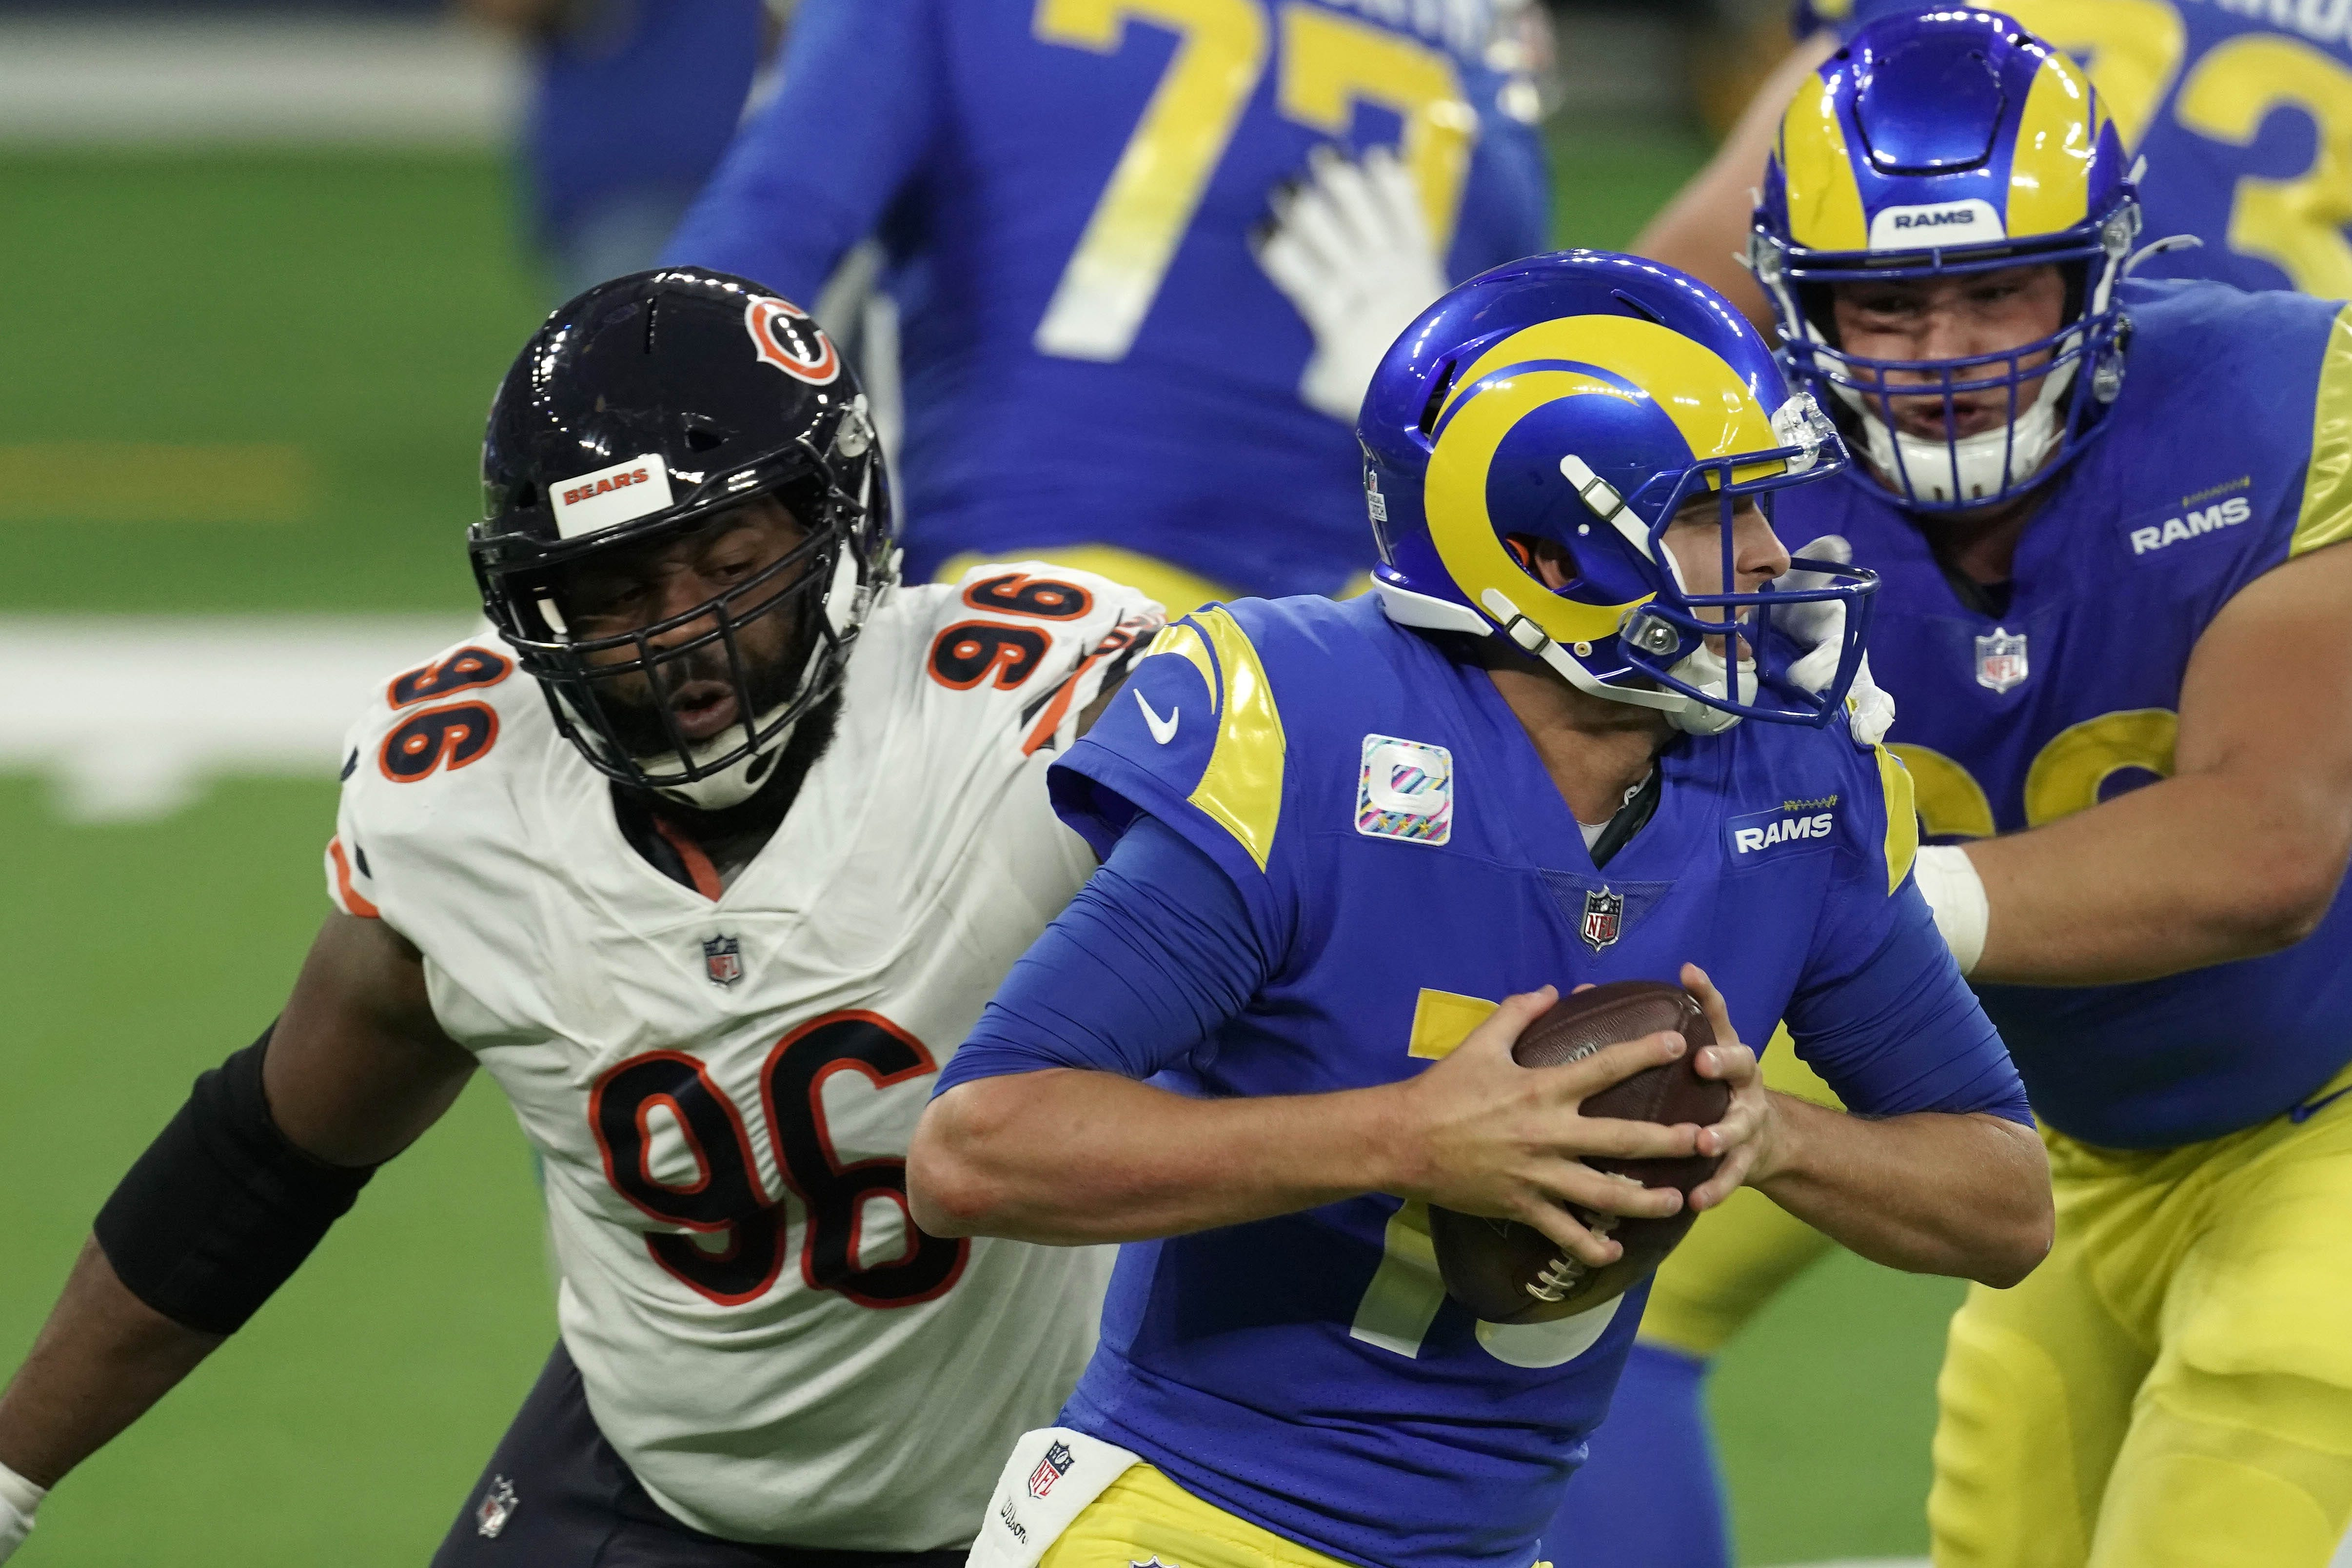 Report: NFL stat correction in Bears-Rams game costs bettor nearly $1 million